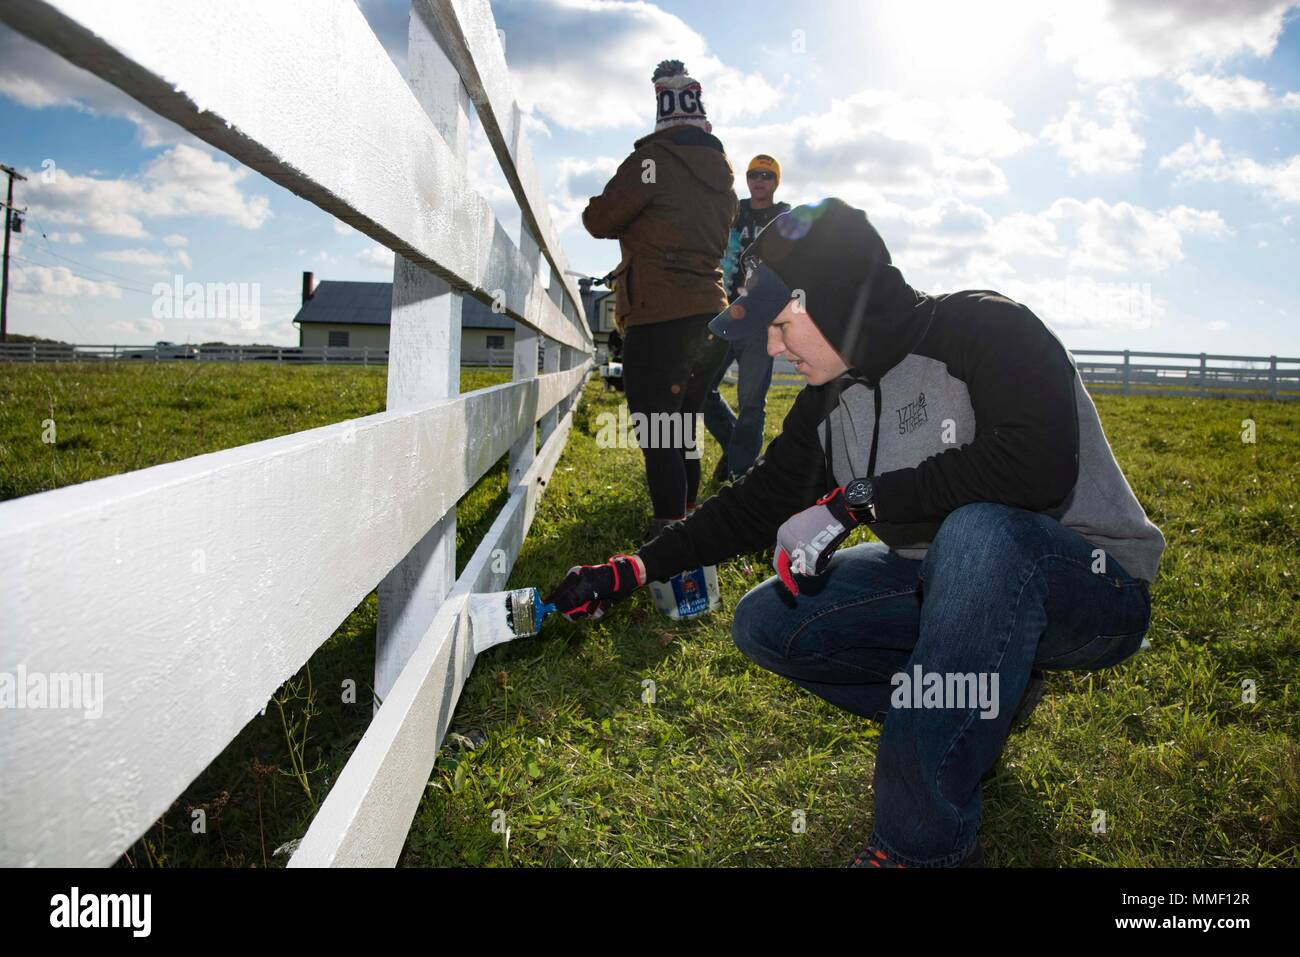 171031-N-FG807-167   GETTYSBURG, Pa. (Oct. 31, 2017) Information Systems Technician 2nd Class Brittany Hansen, from Scranton, Pa., assigned to the aircraft carrier USS Dwight D. Eisenhower (CVN 69)(Ike), paints a fence on the Dwight D. Eisenhower National Historic Site. Ike is undergoing a Planned Incremental Availability (PIA) at Norfolk Naval Shipyard during the maintenance phase of the Optimized Fleet Response Plan (OFRP).  (U.S. Navy photo by Mass Communication Specialist 3rd Class Devin Alexondra Lowe) Stock Photo